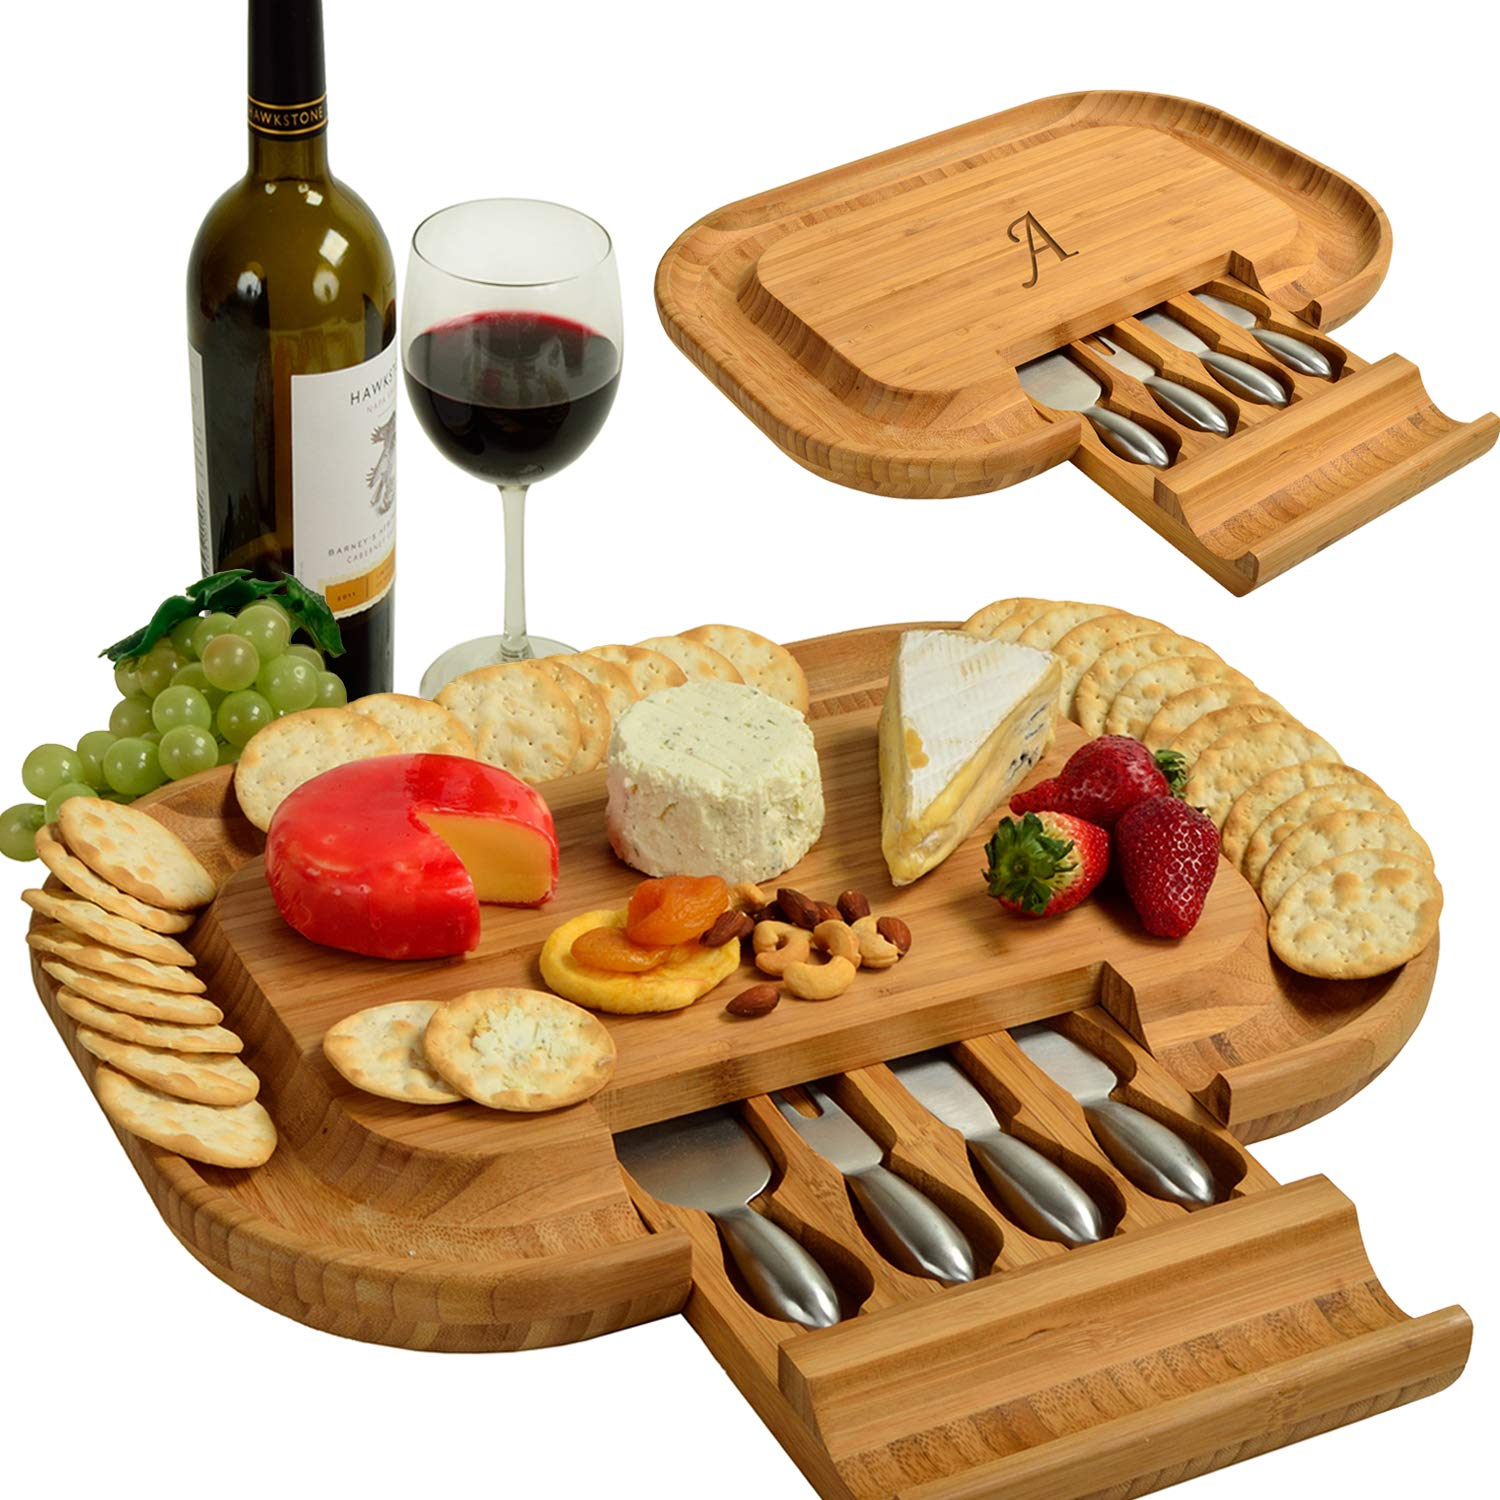 Picnic at Ascot Original Personalized Monogrammed Bamboo Cheese/Charcuterie Board with Knife Set & Cheese Markers- Designed & Quality Checked in USA by Picnic at Ascot